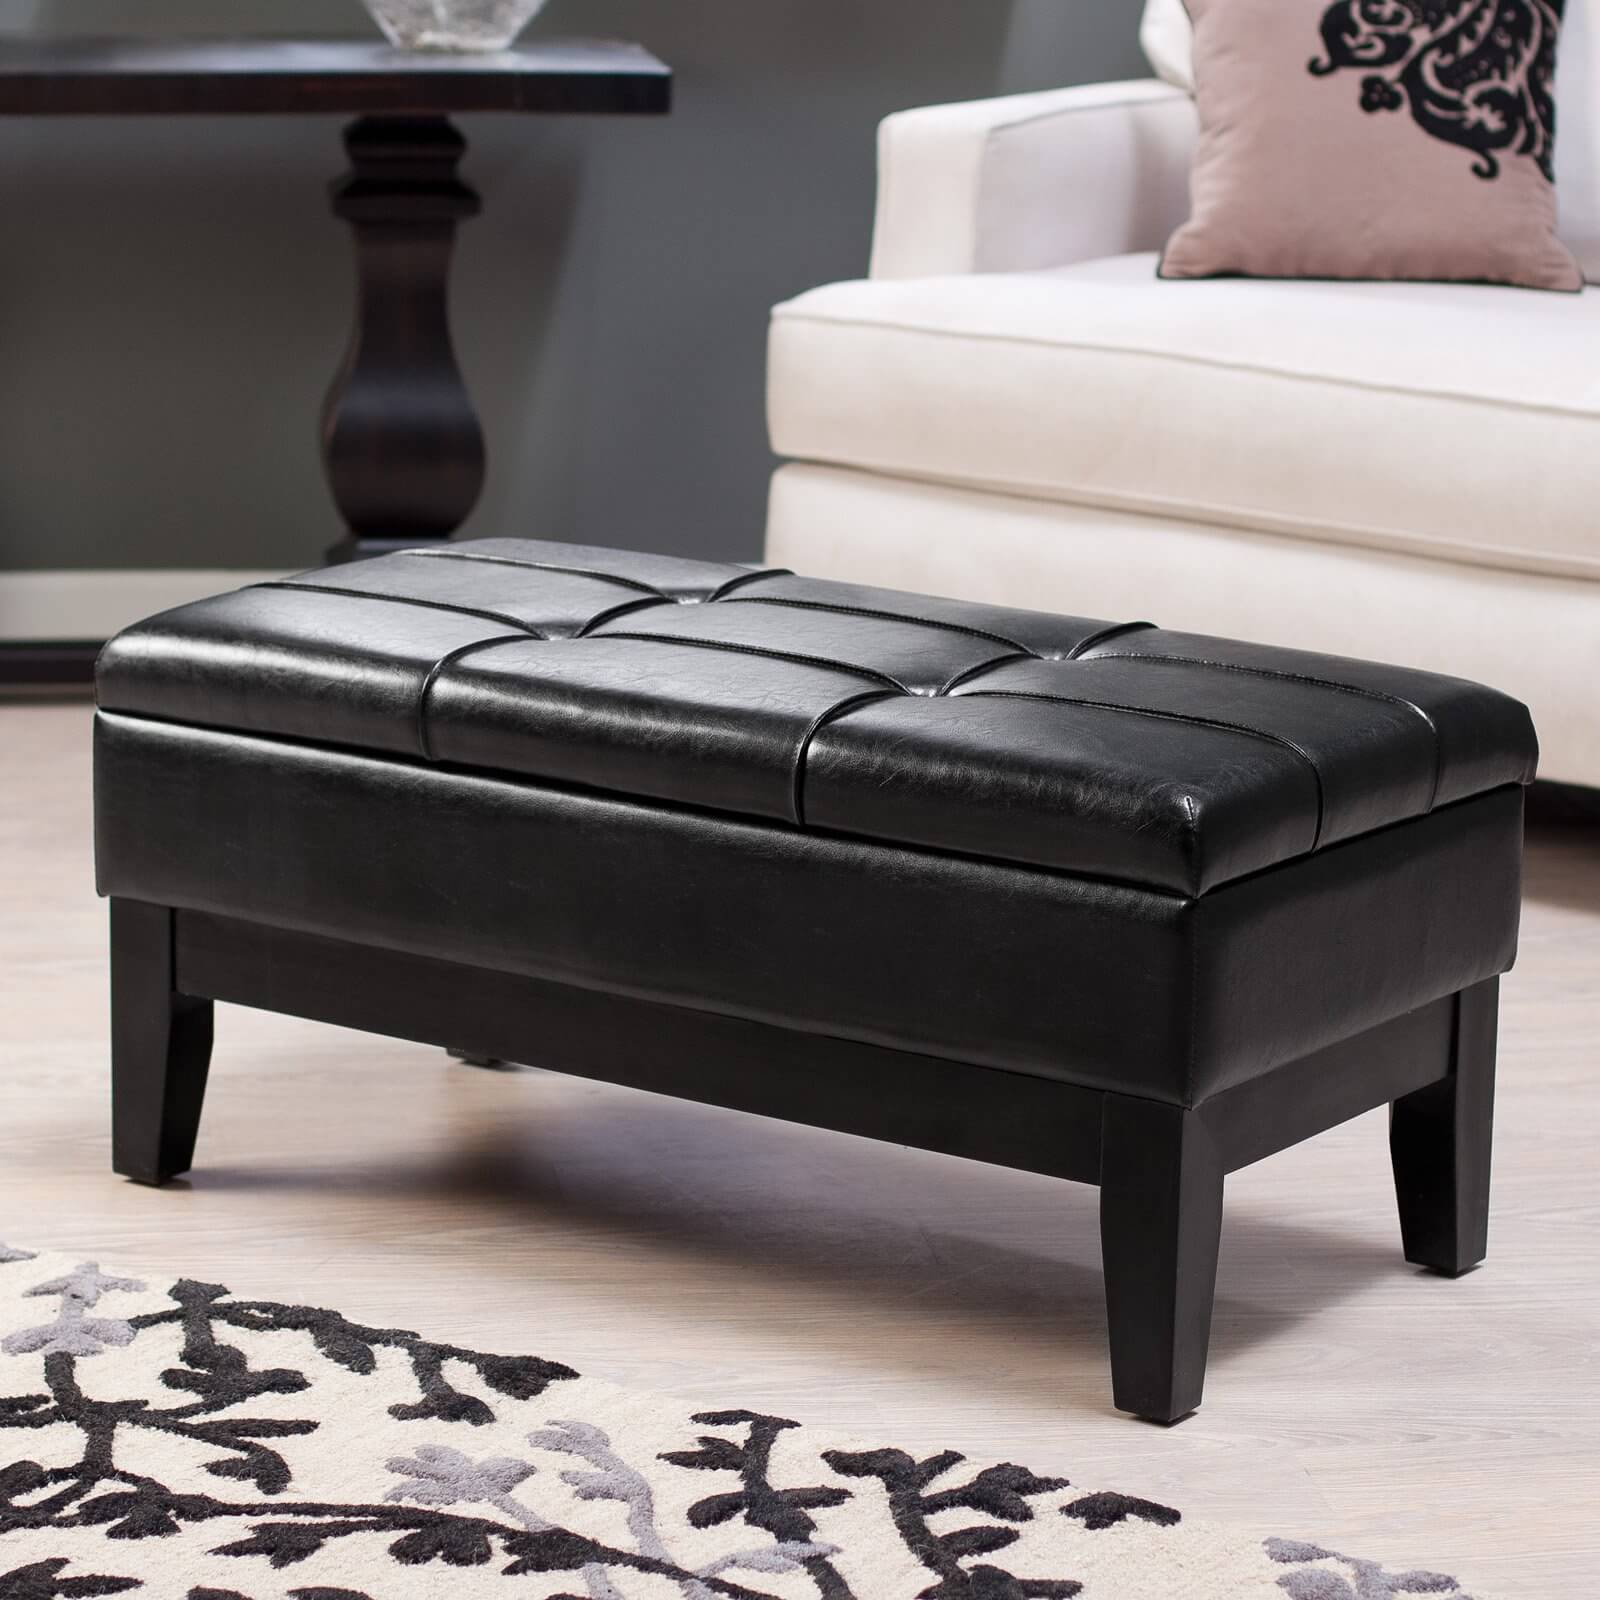 The rectangular shape allows for wider surface area, multiple spaces for feet to rest, and often, more storage options within an ottoman. These can be found in standard cushion top or cocktail style.